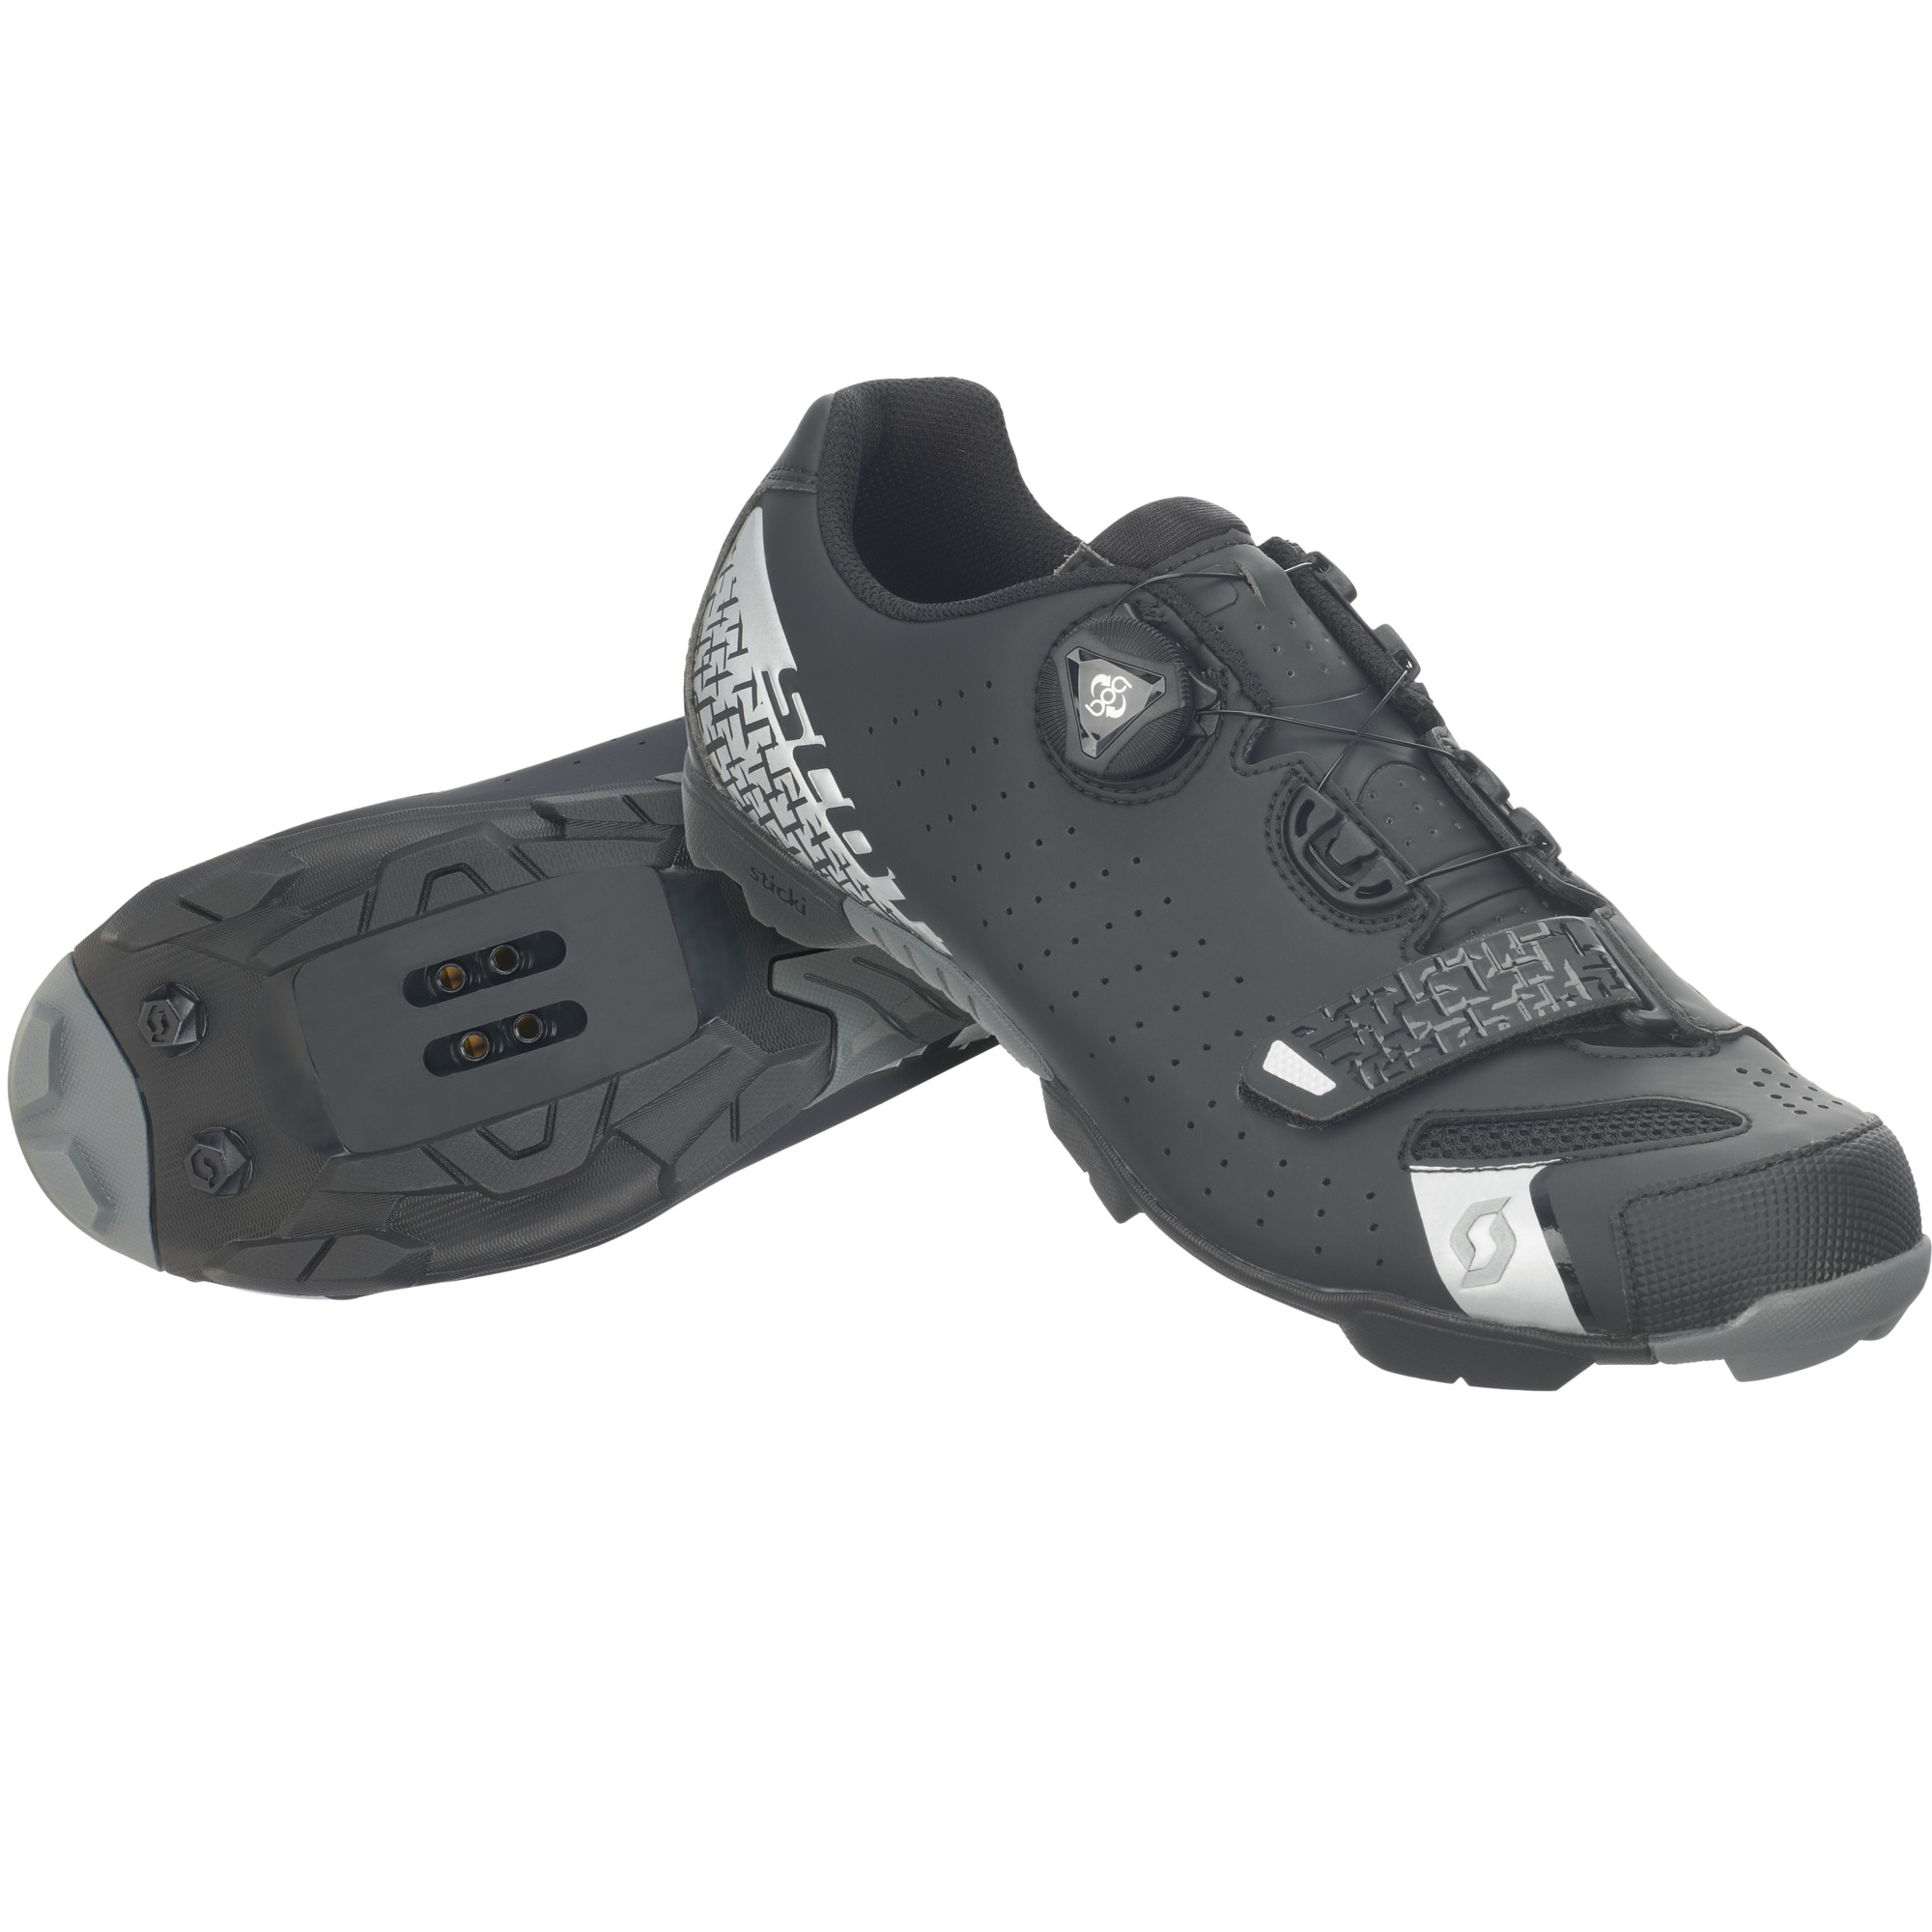 Chaussures SCOTT MTB Comp Boa Lady